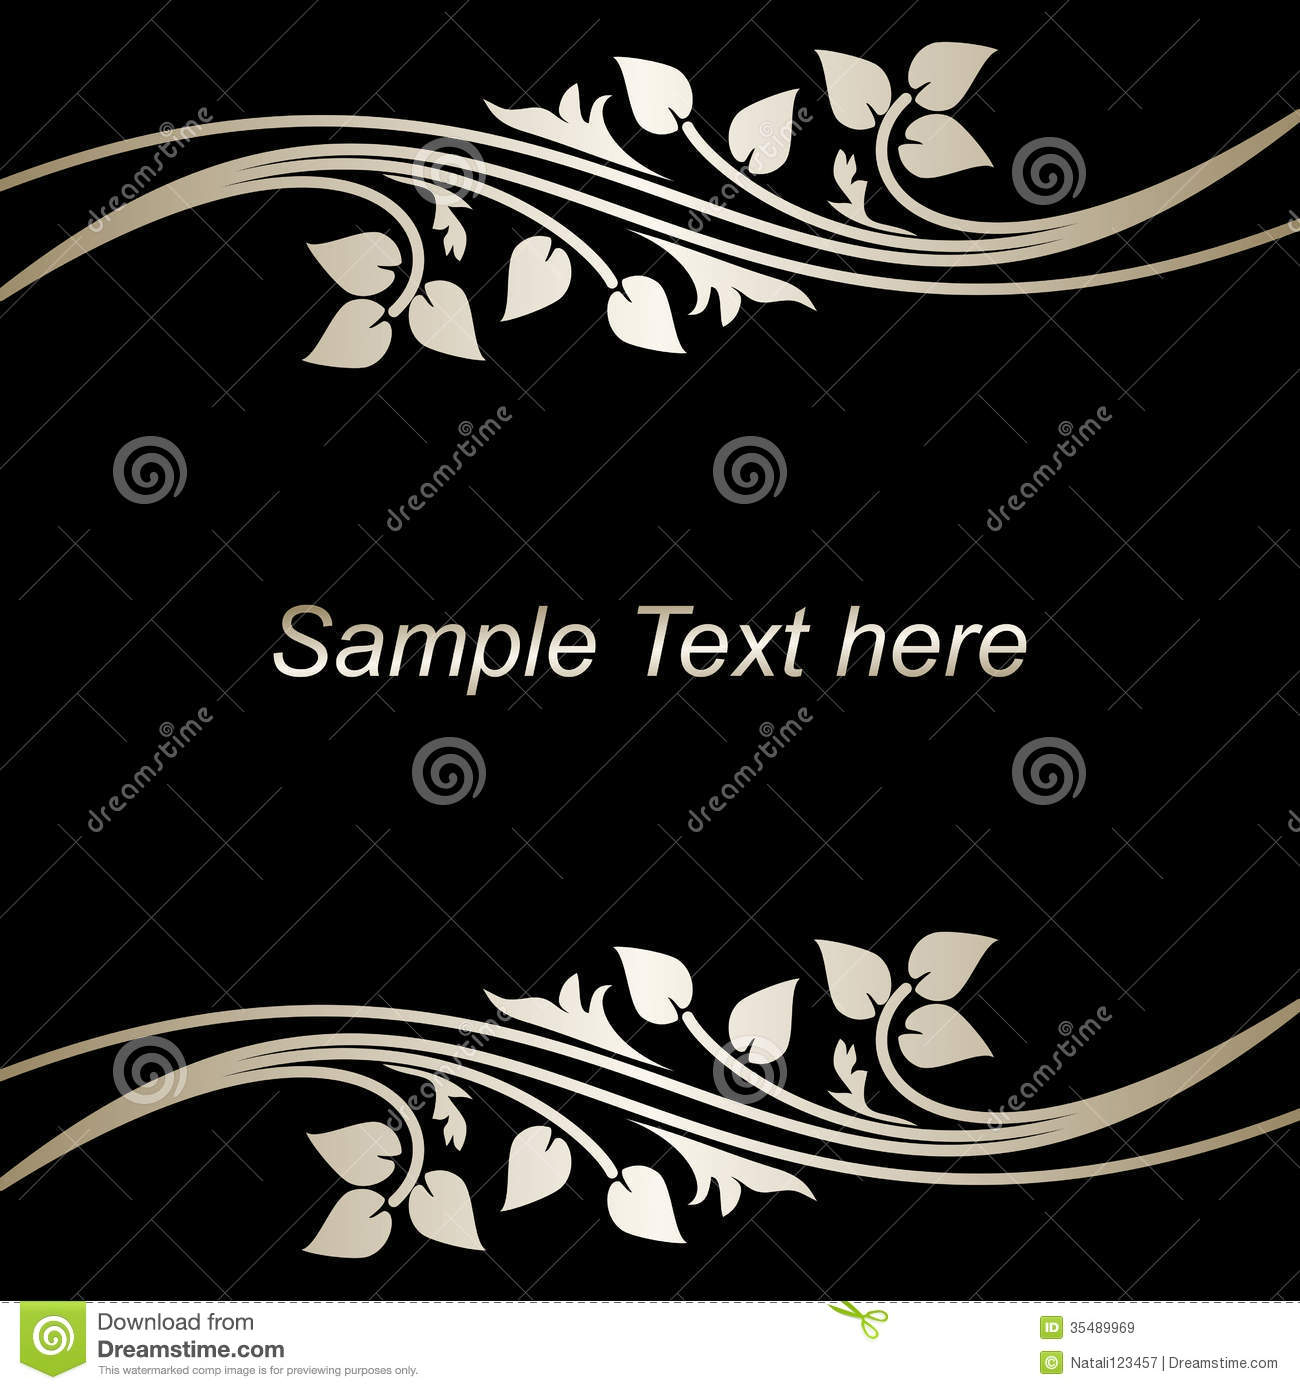 Stylish Black Background With Silver Borders Royalty Free